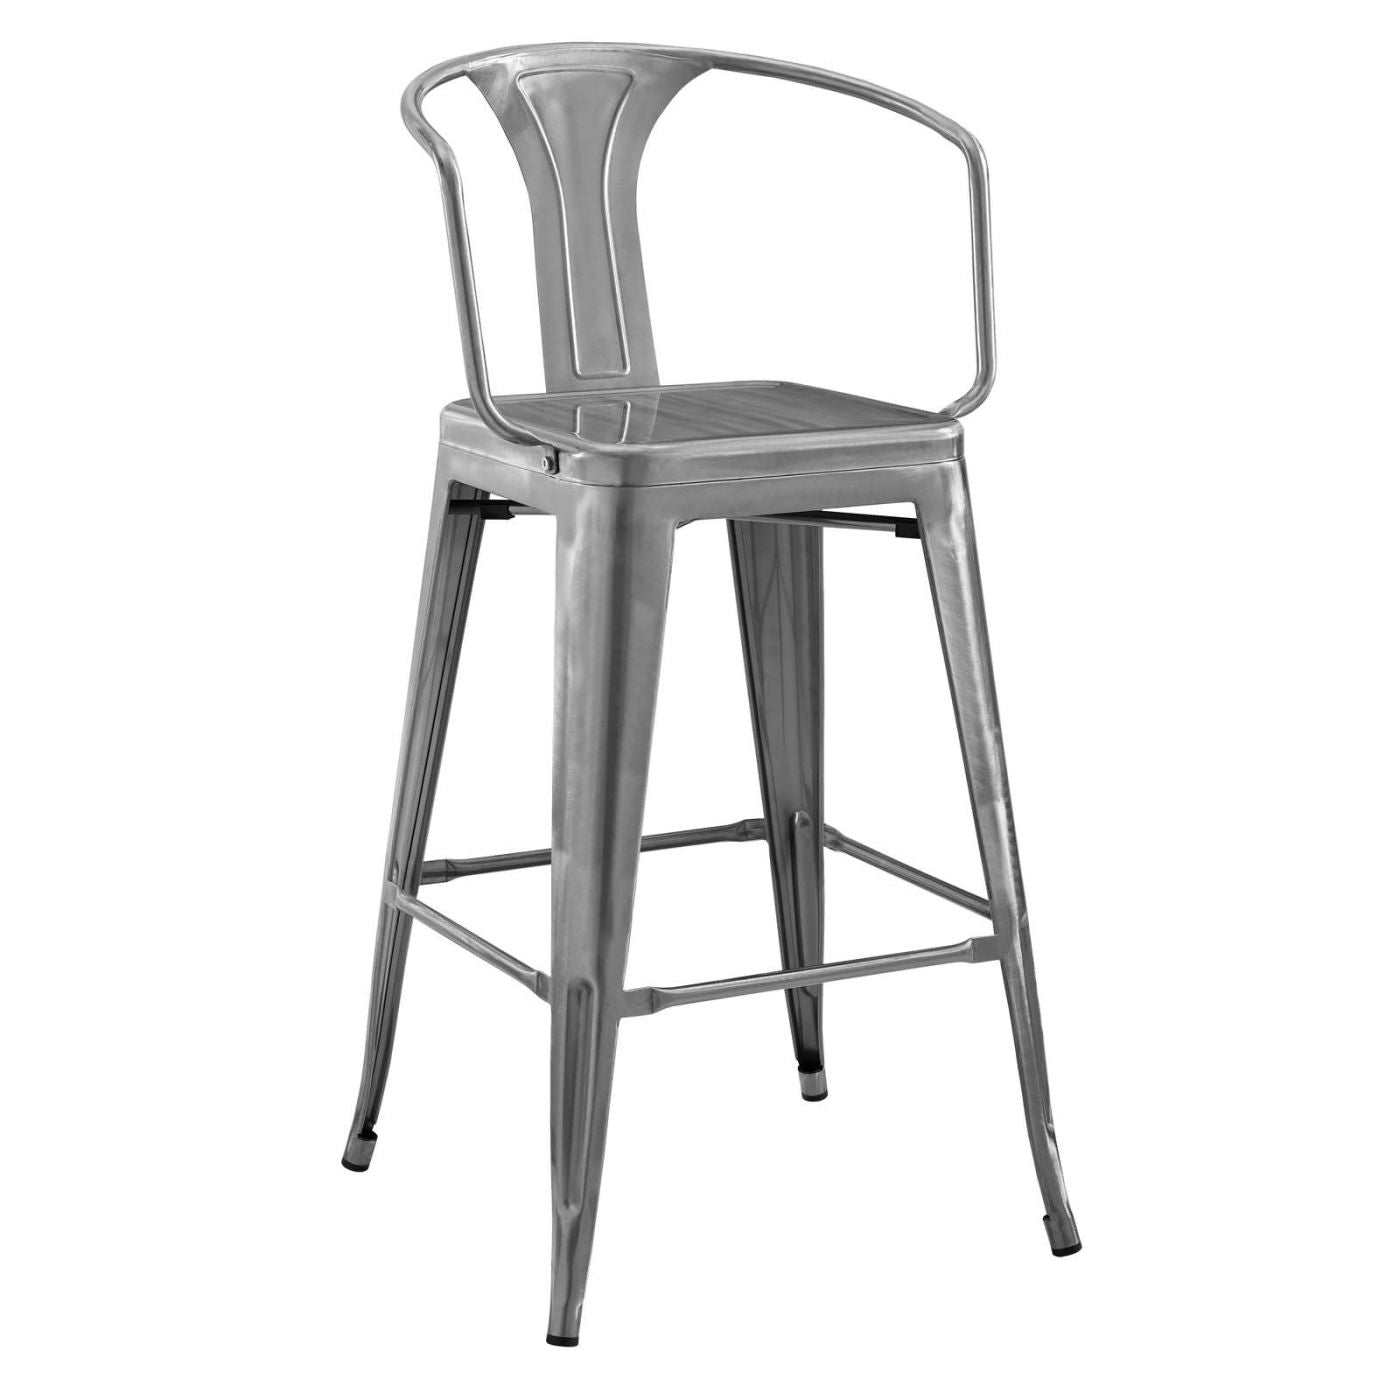 Modway Bar Chairs On Sale Eei 2817 Blk Promenade Cafe And